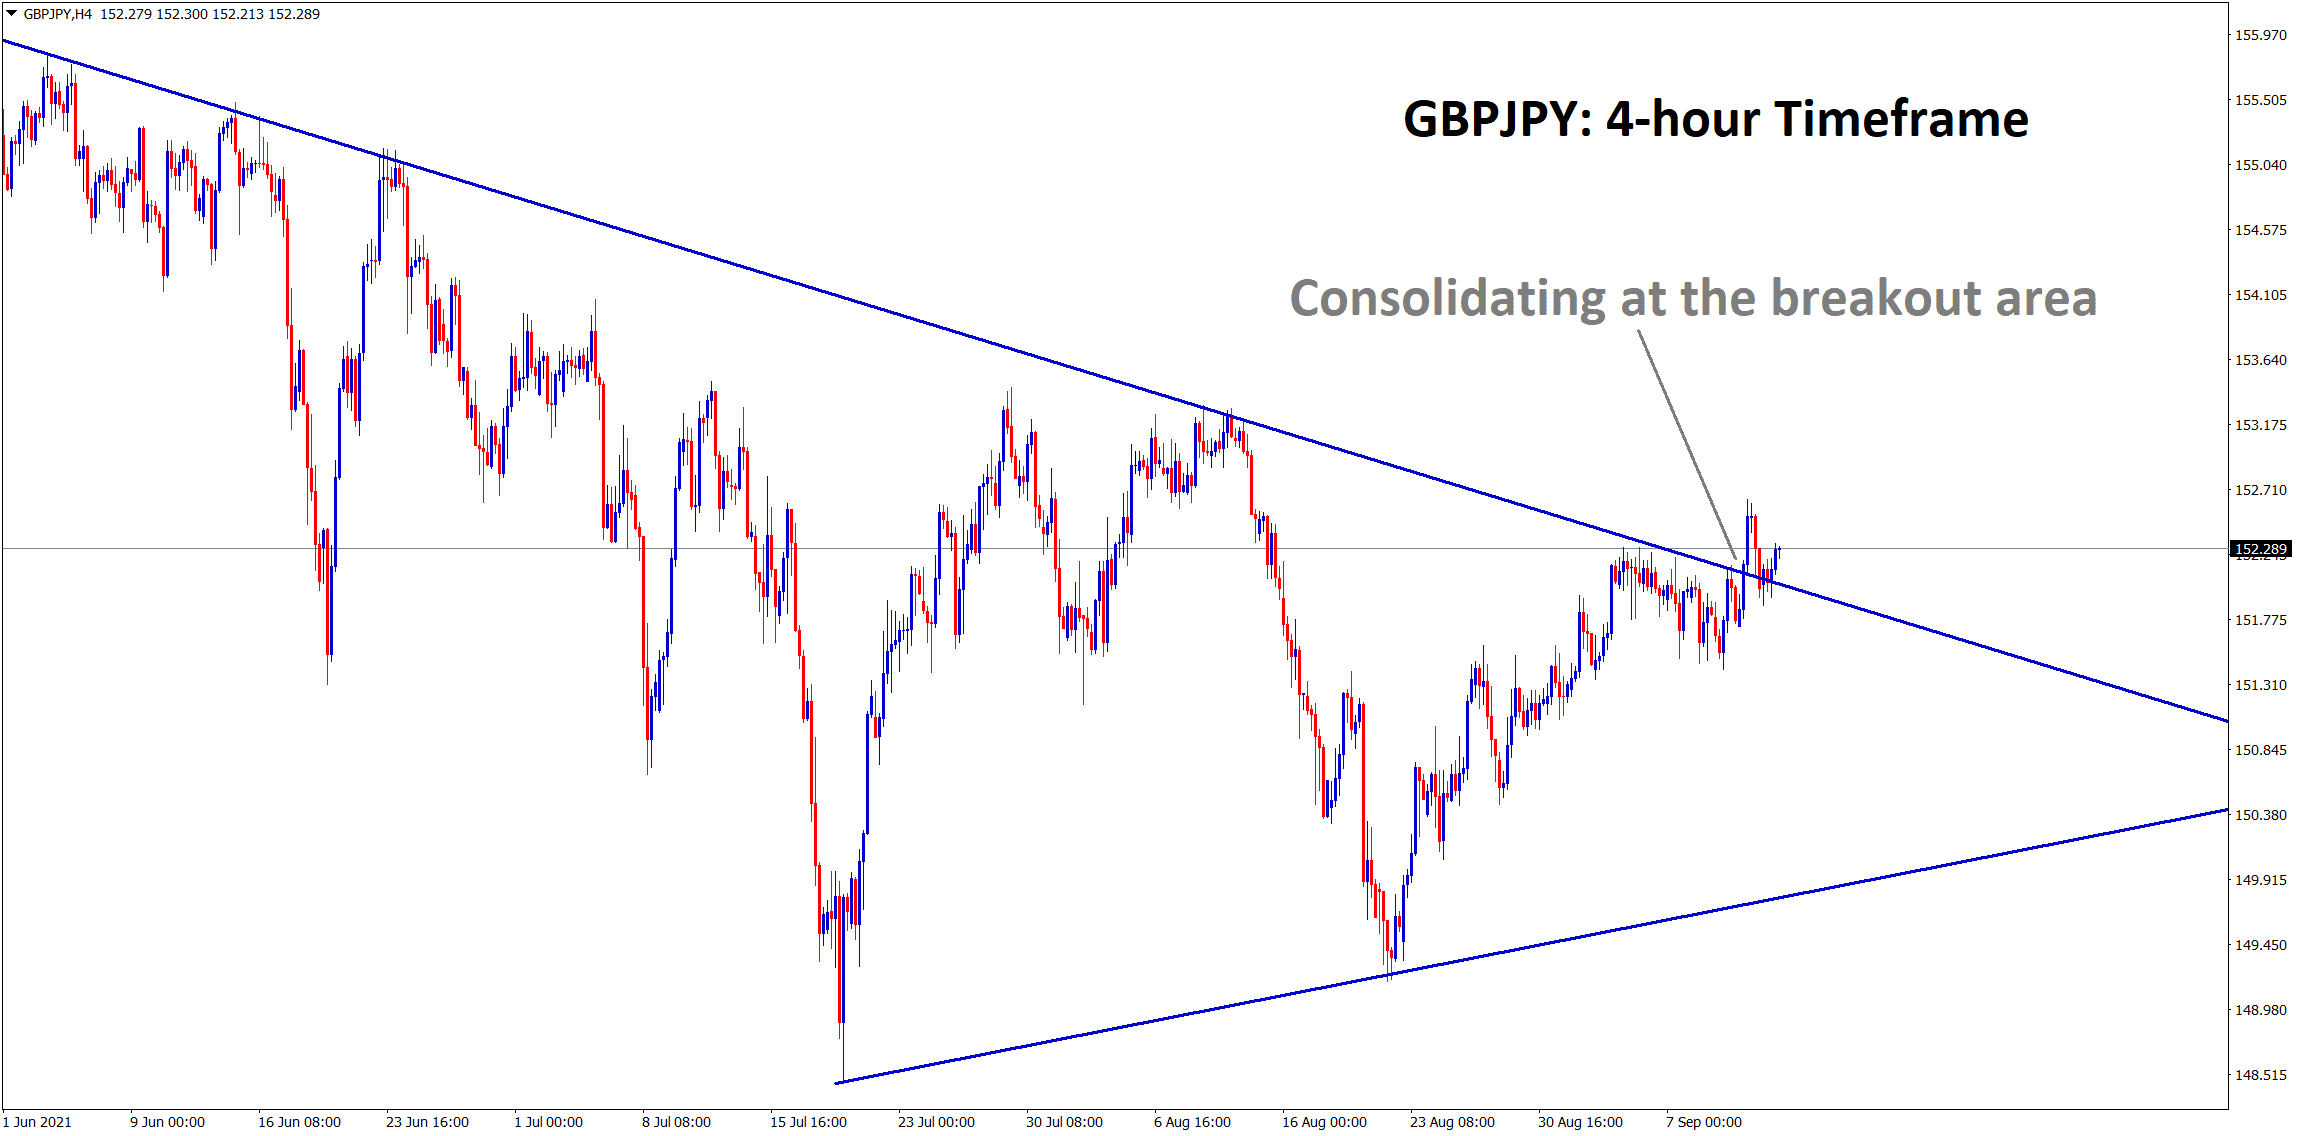 GBPJPY is consolidating now at the breakout area